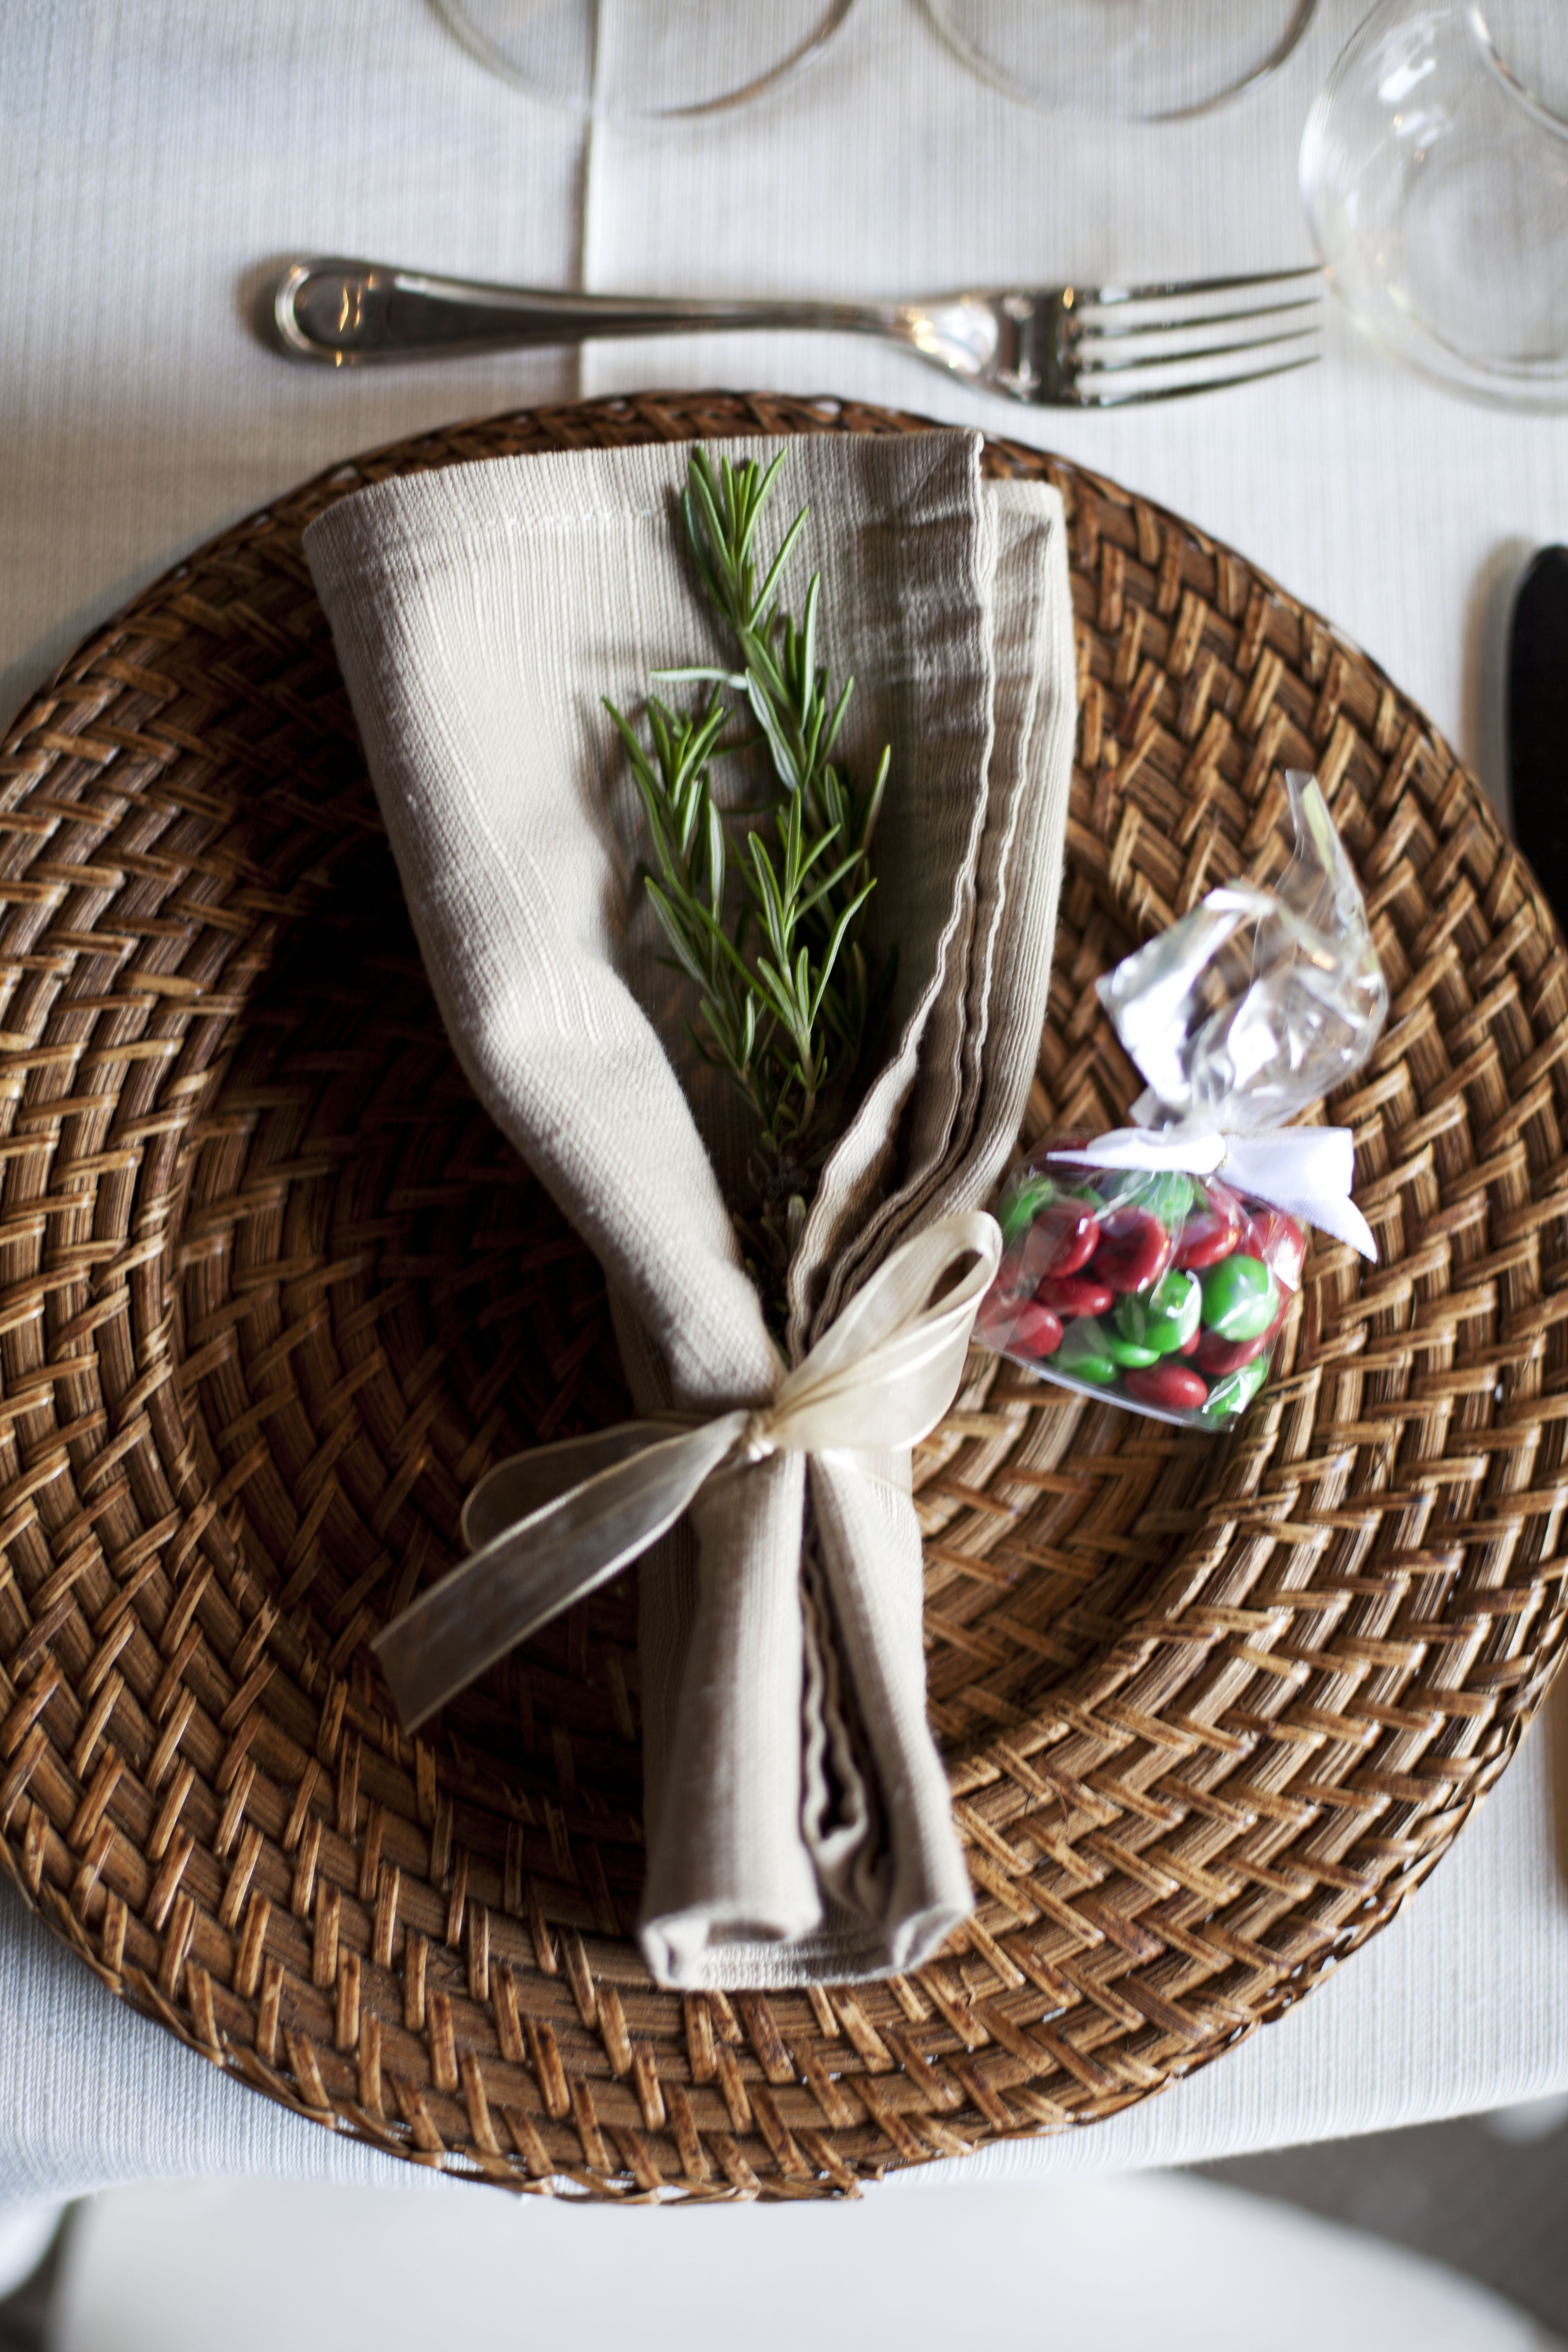 Rosemary and smarties for the guests